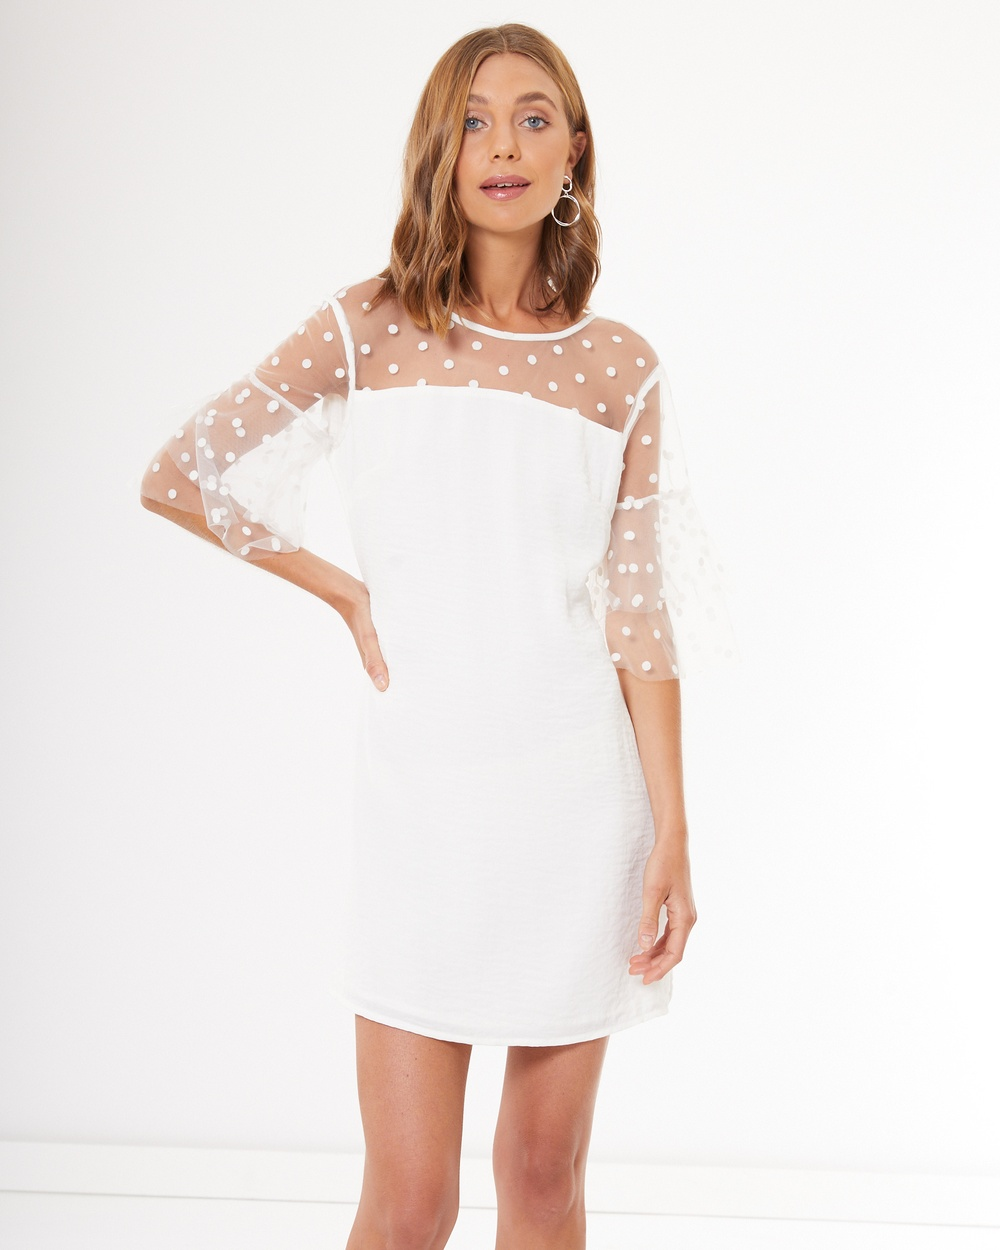 Calli Charis Dress Dresses White Charis Dress